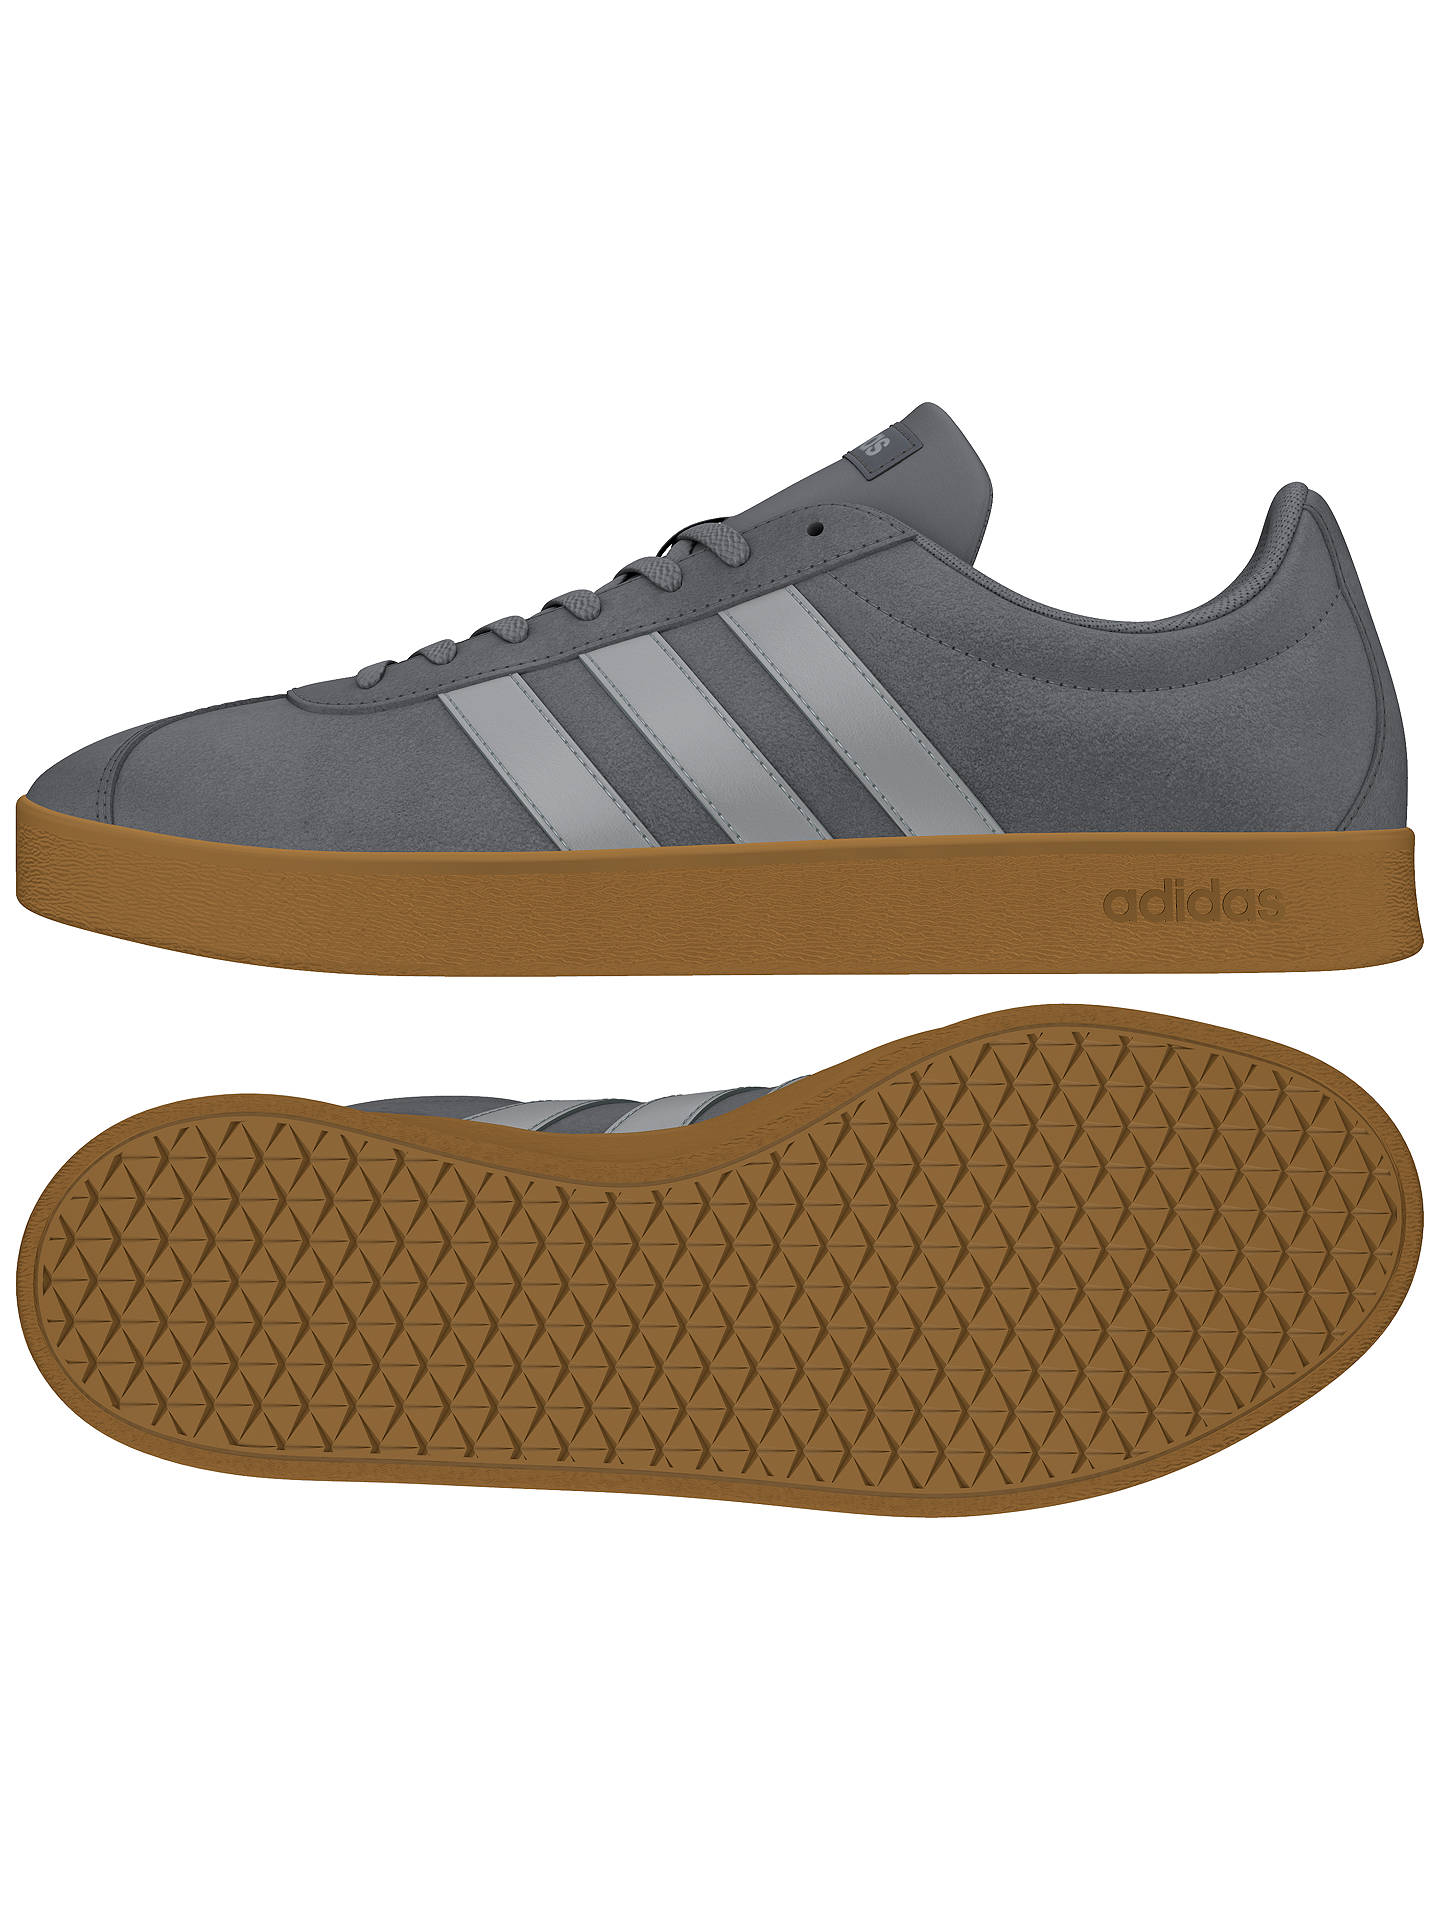 sports shoes 37c36 c8b99 ... Buy Adidas NEO VL 2.0 Court Suede Men s Trainers, Grey, 7 Online at  johnlewis ...